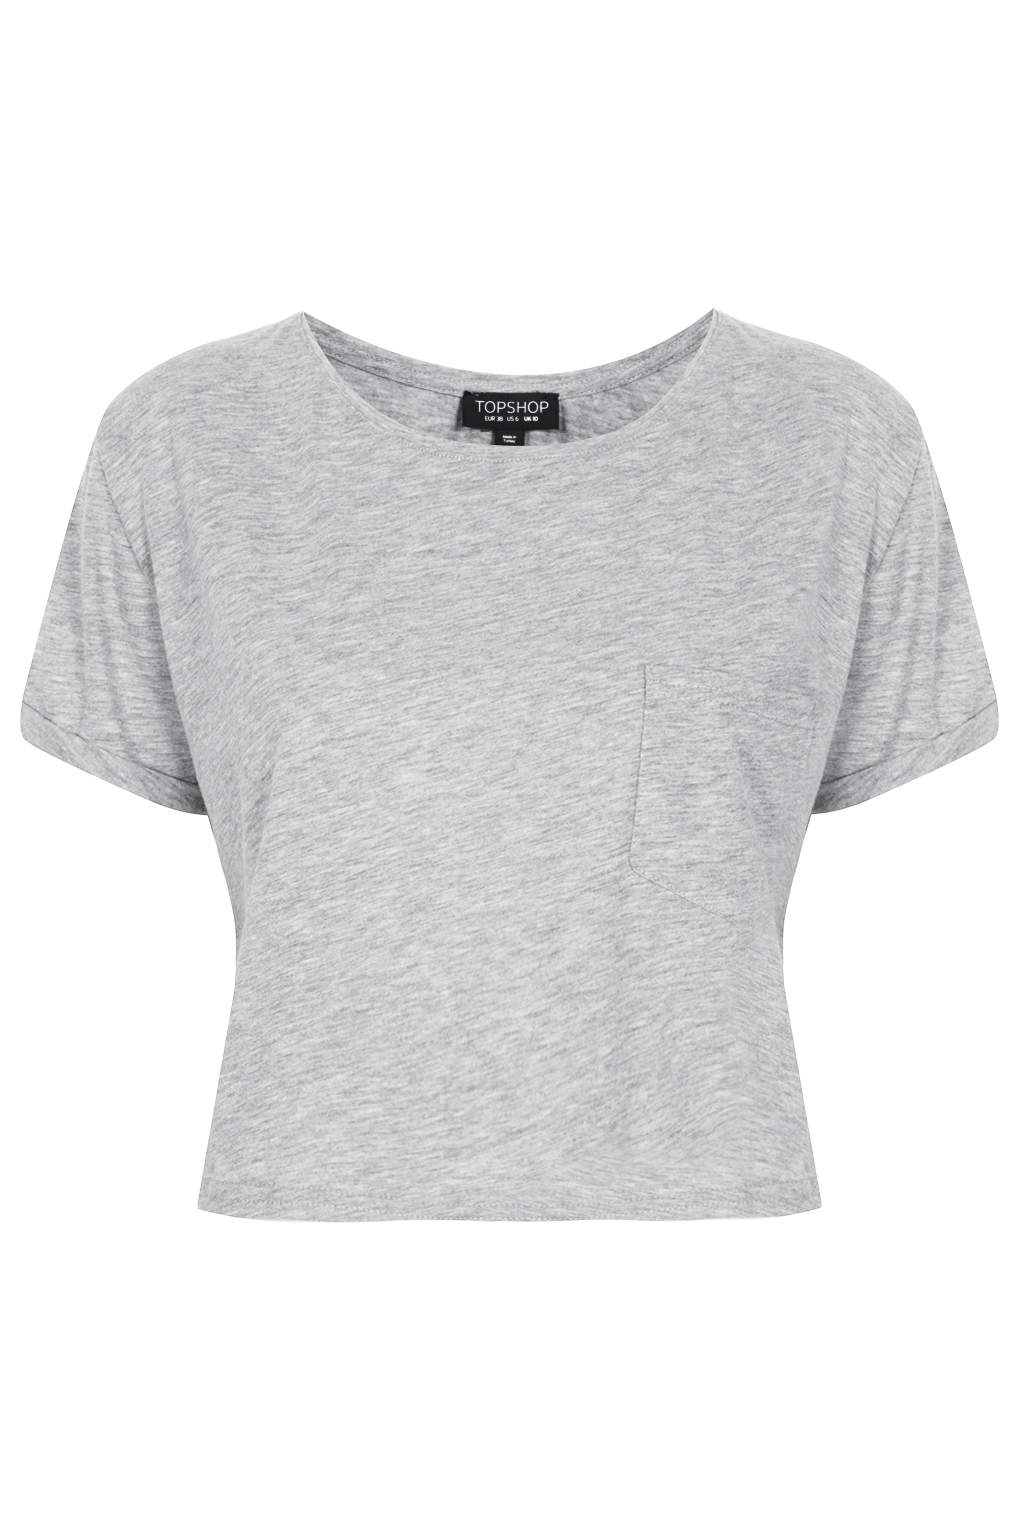 Roll Pocket Crop Tee - View All Sale - Sale